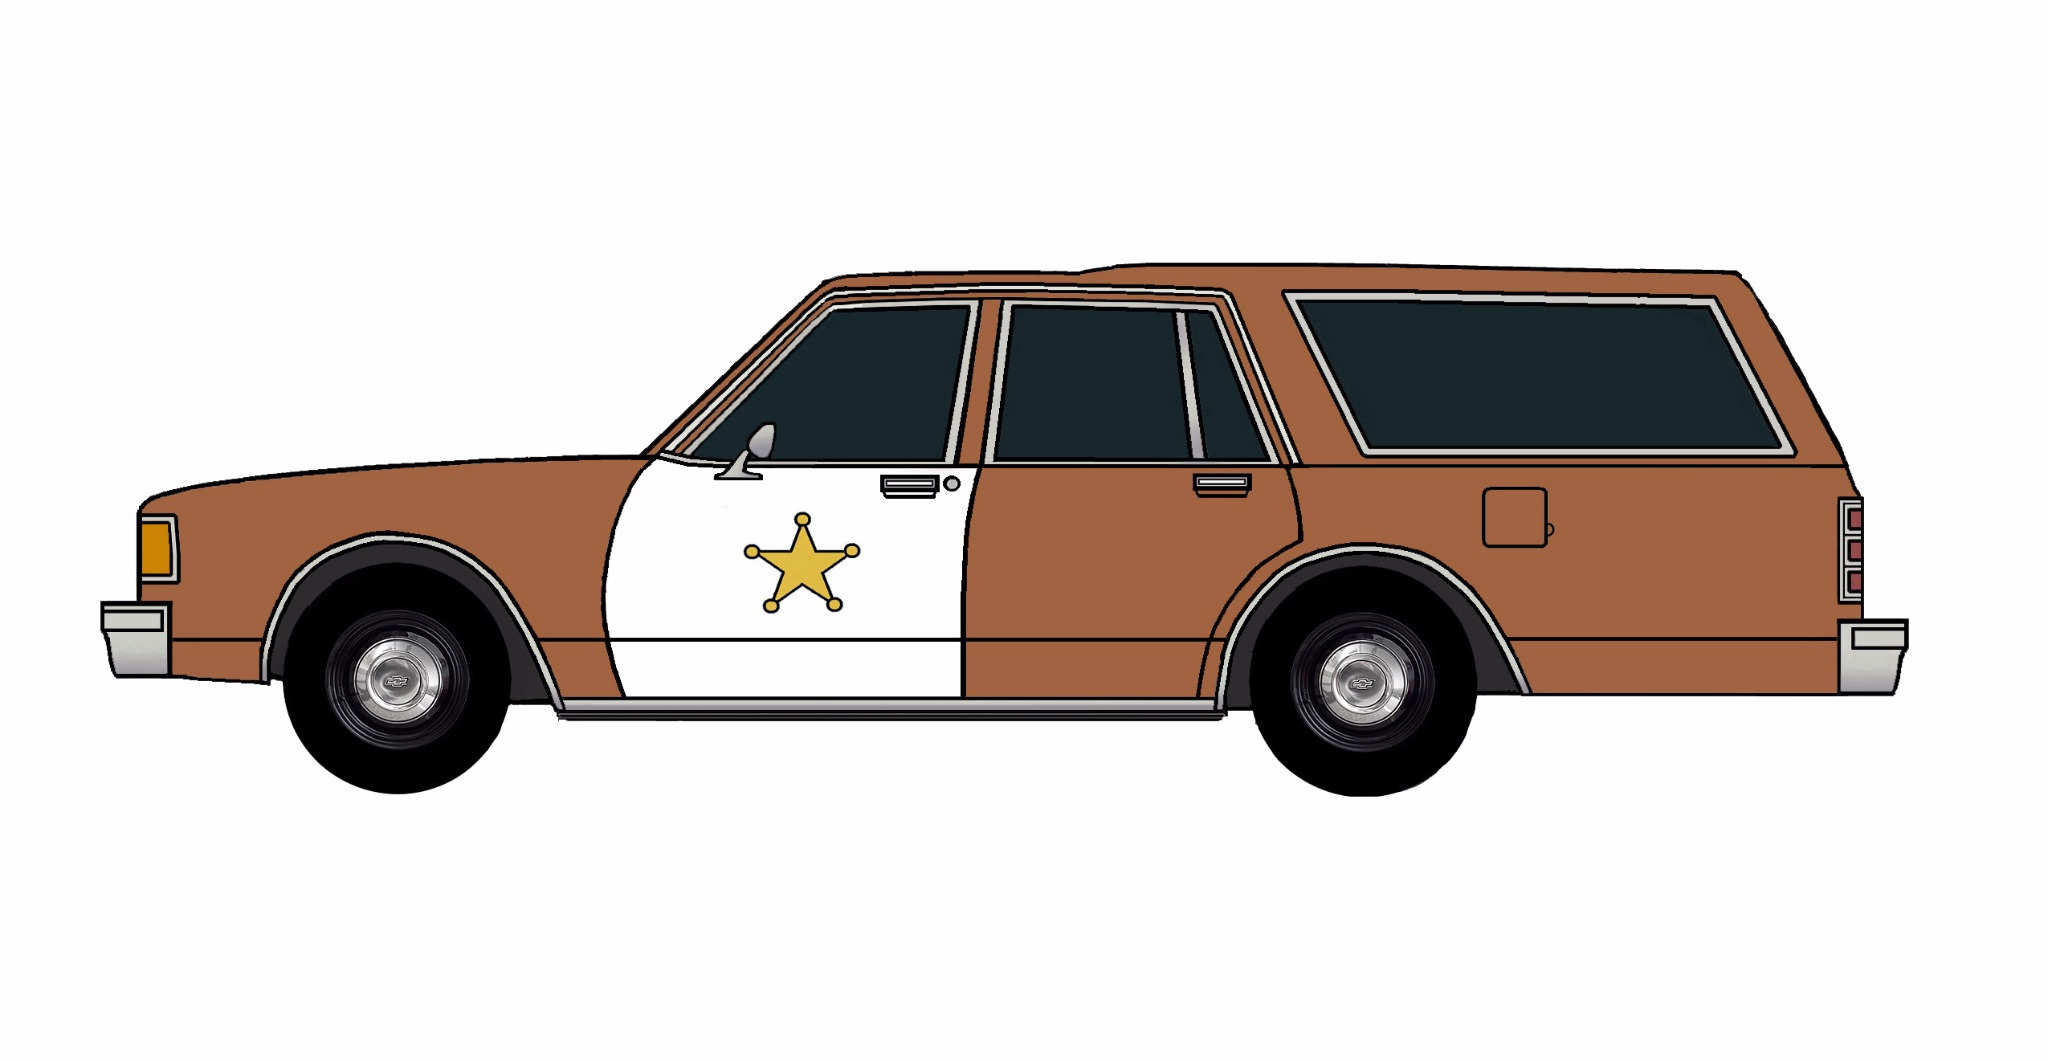 1986 Chevy Caprice 9C1 Wagon SIENNA BROWN